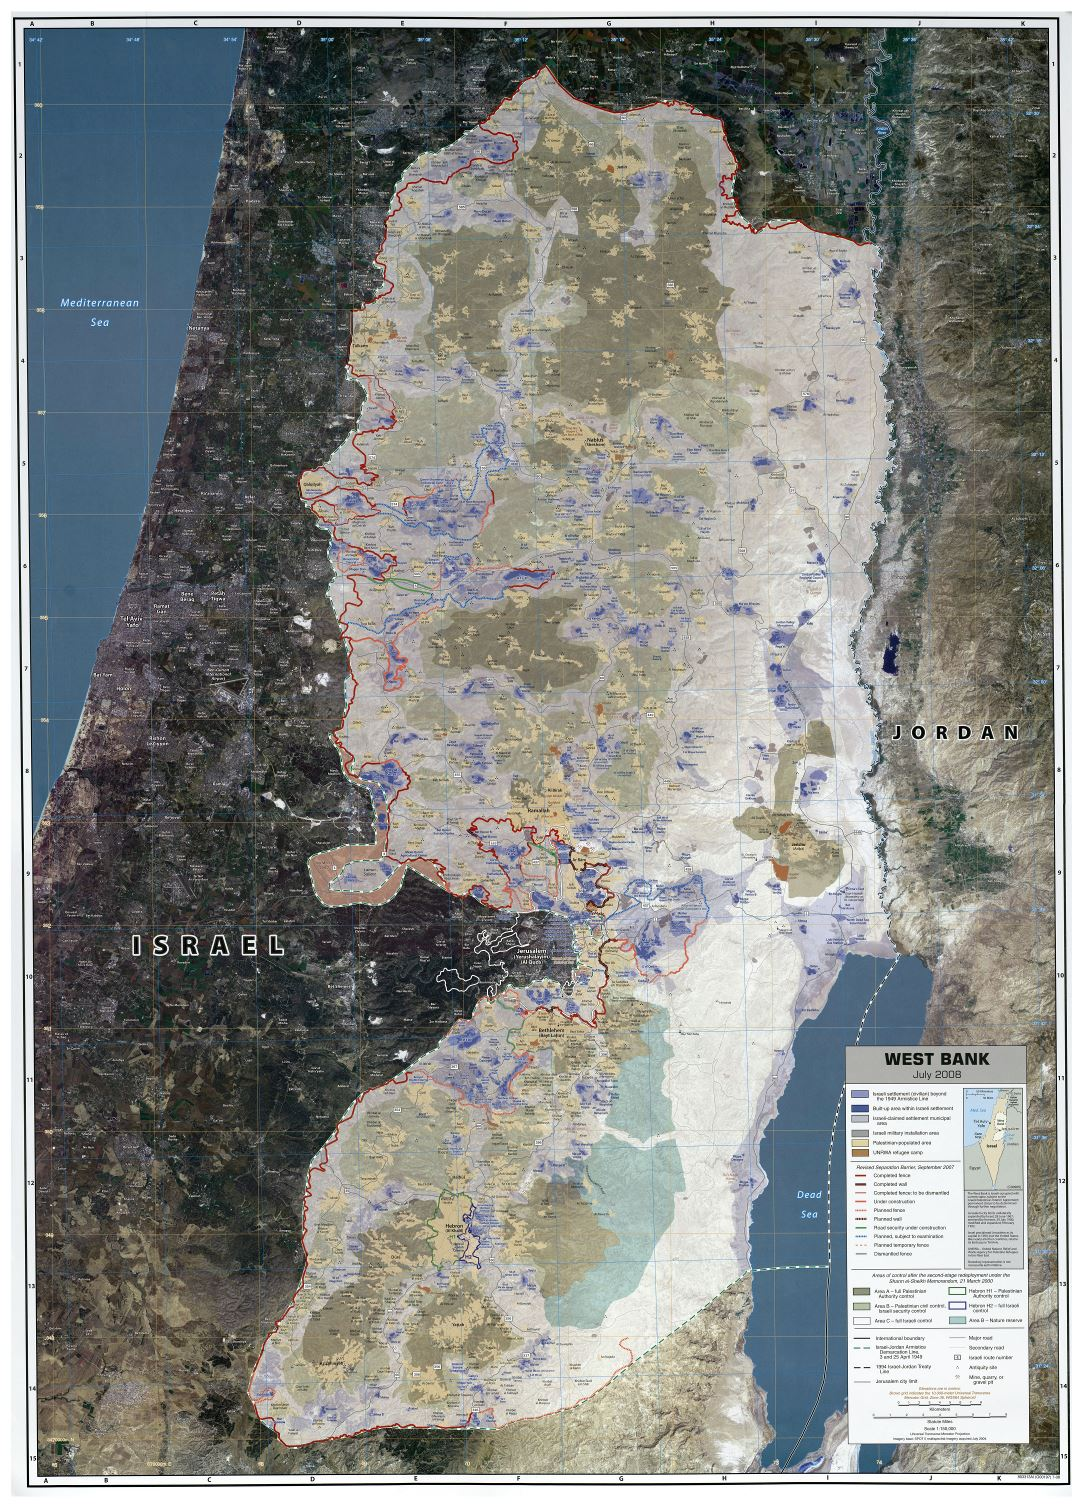 Large scale map of West Bank with other marks - 2008